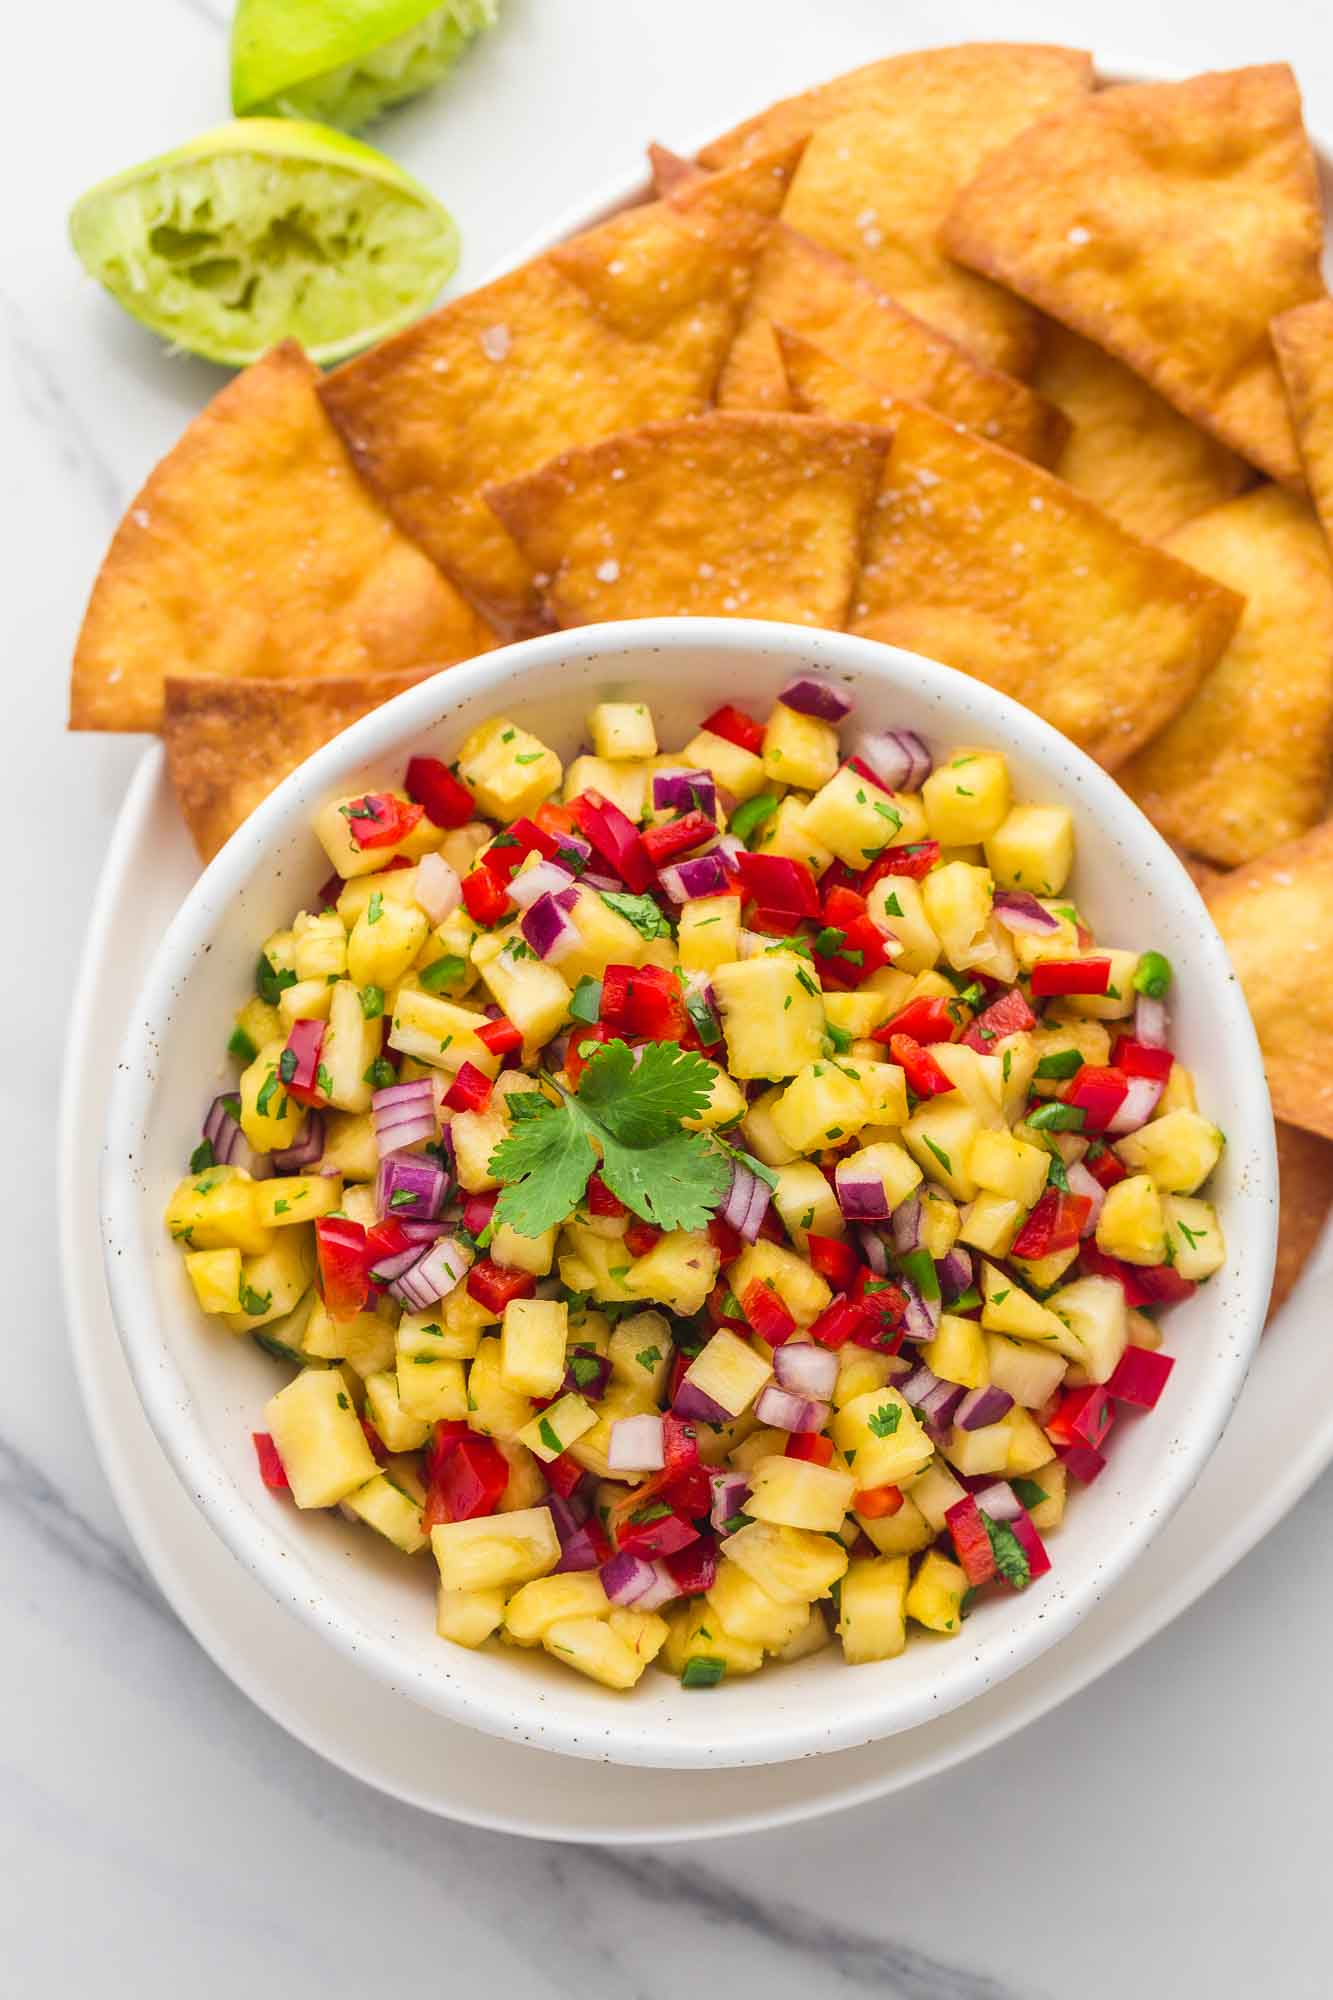 A platter with a bowl of pineapple salsa with tortilla chips